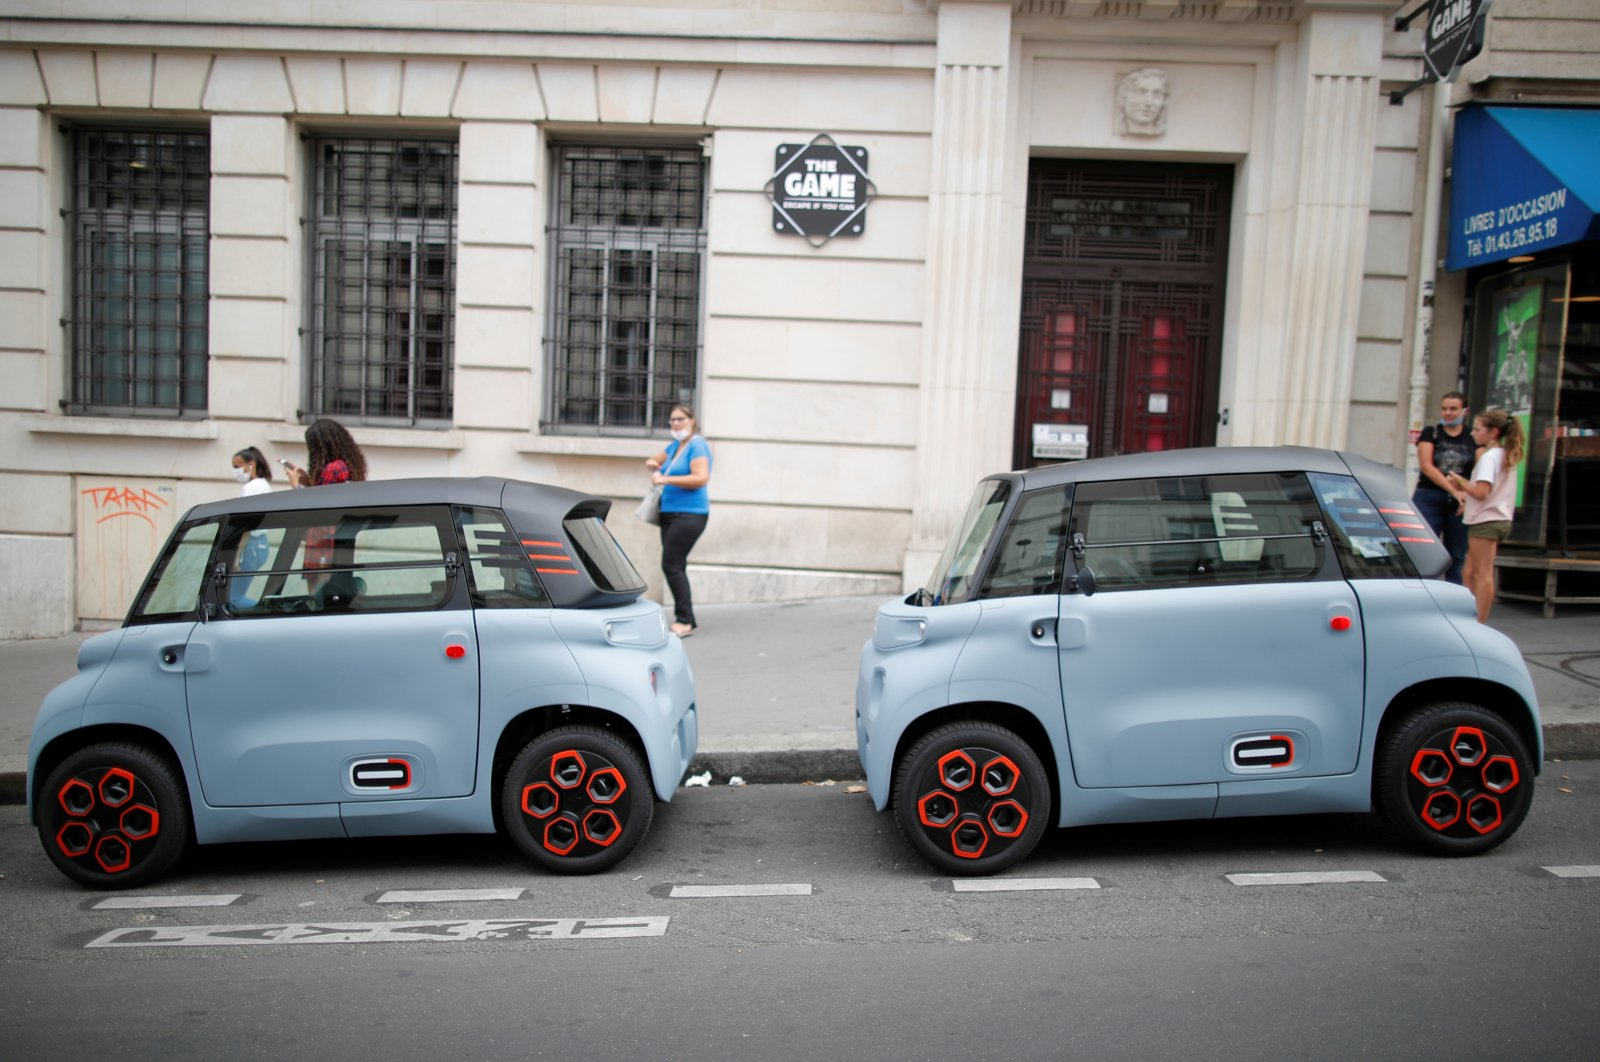 PSA's Citroen new electric city cars AMI are seen during a media presentation in Paris, France, Aug. 25, 2020. (Reuters Photo)